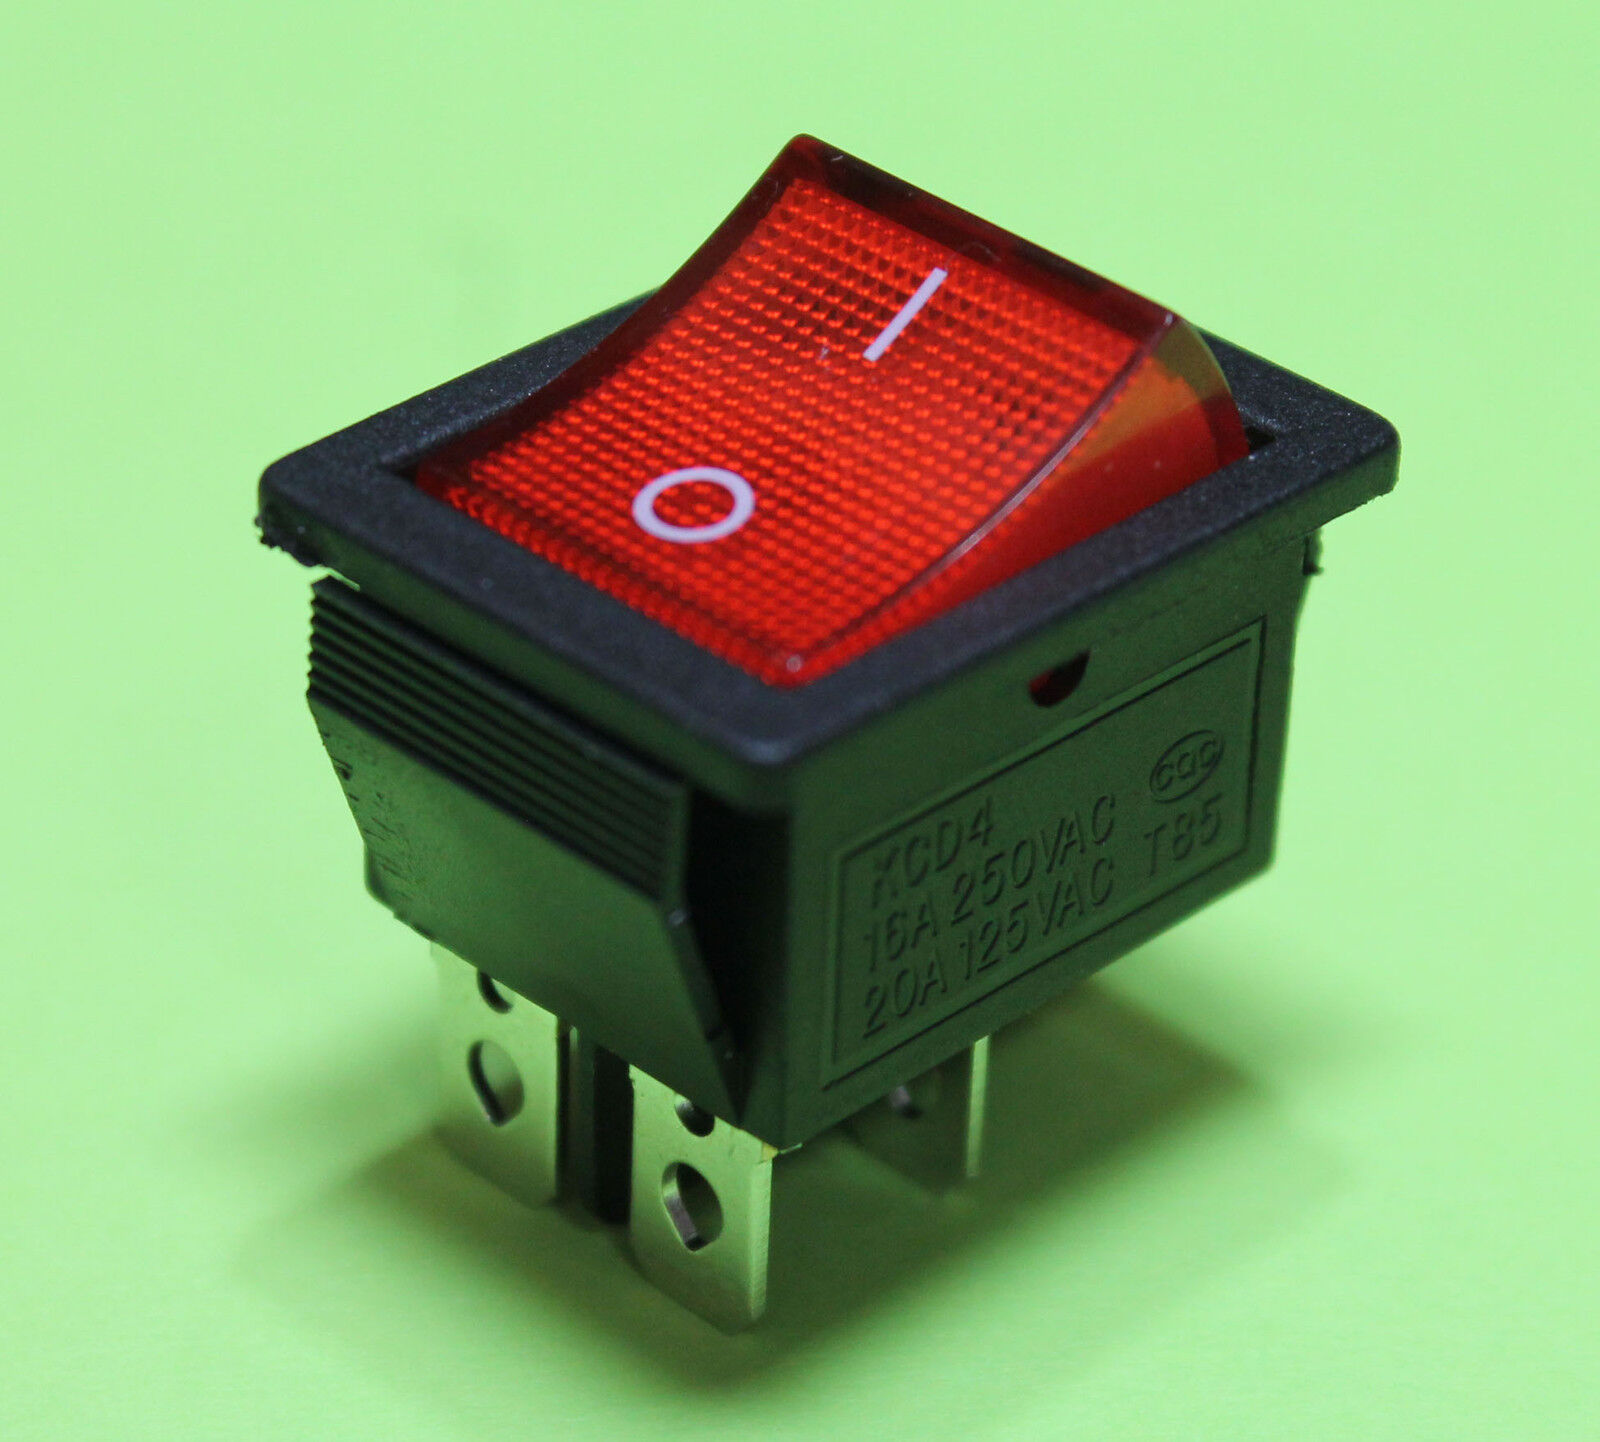 Red Light On Off Ac Rocker Switch 250v 16 Amp 125v 20a Dpst 4 Lug 4xblack Push Button Circuit Momentary 3a Car Dash Terminals